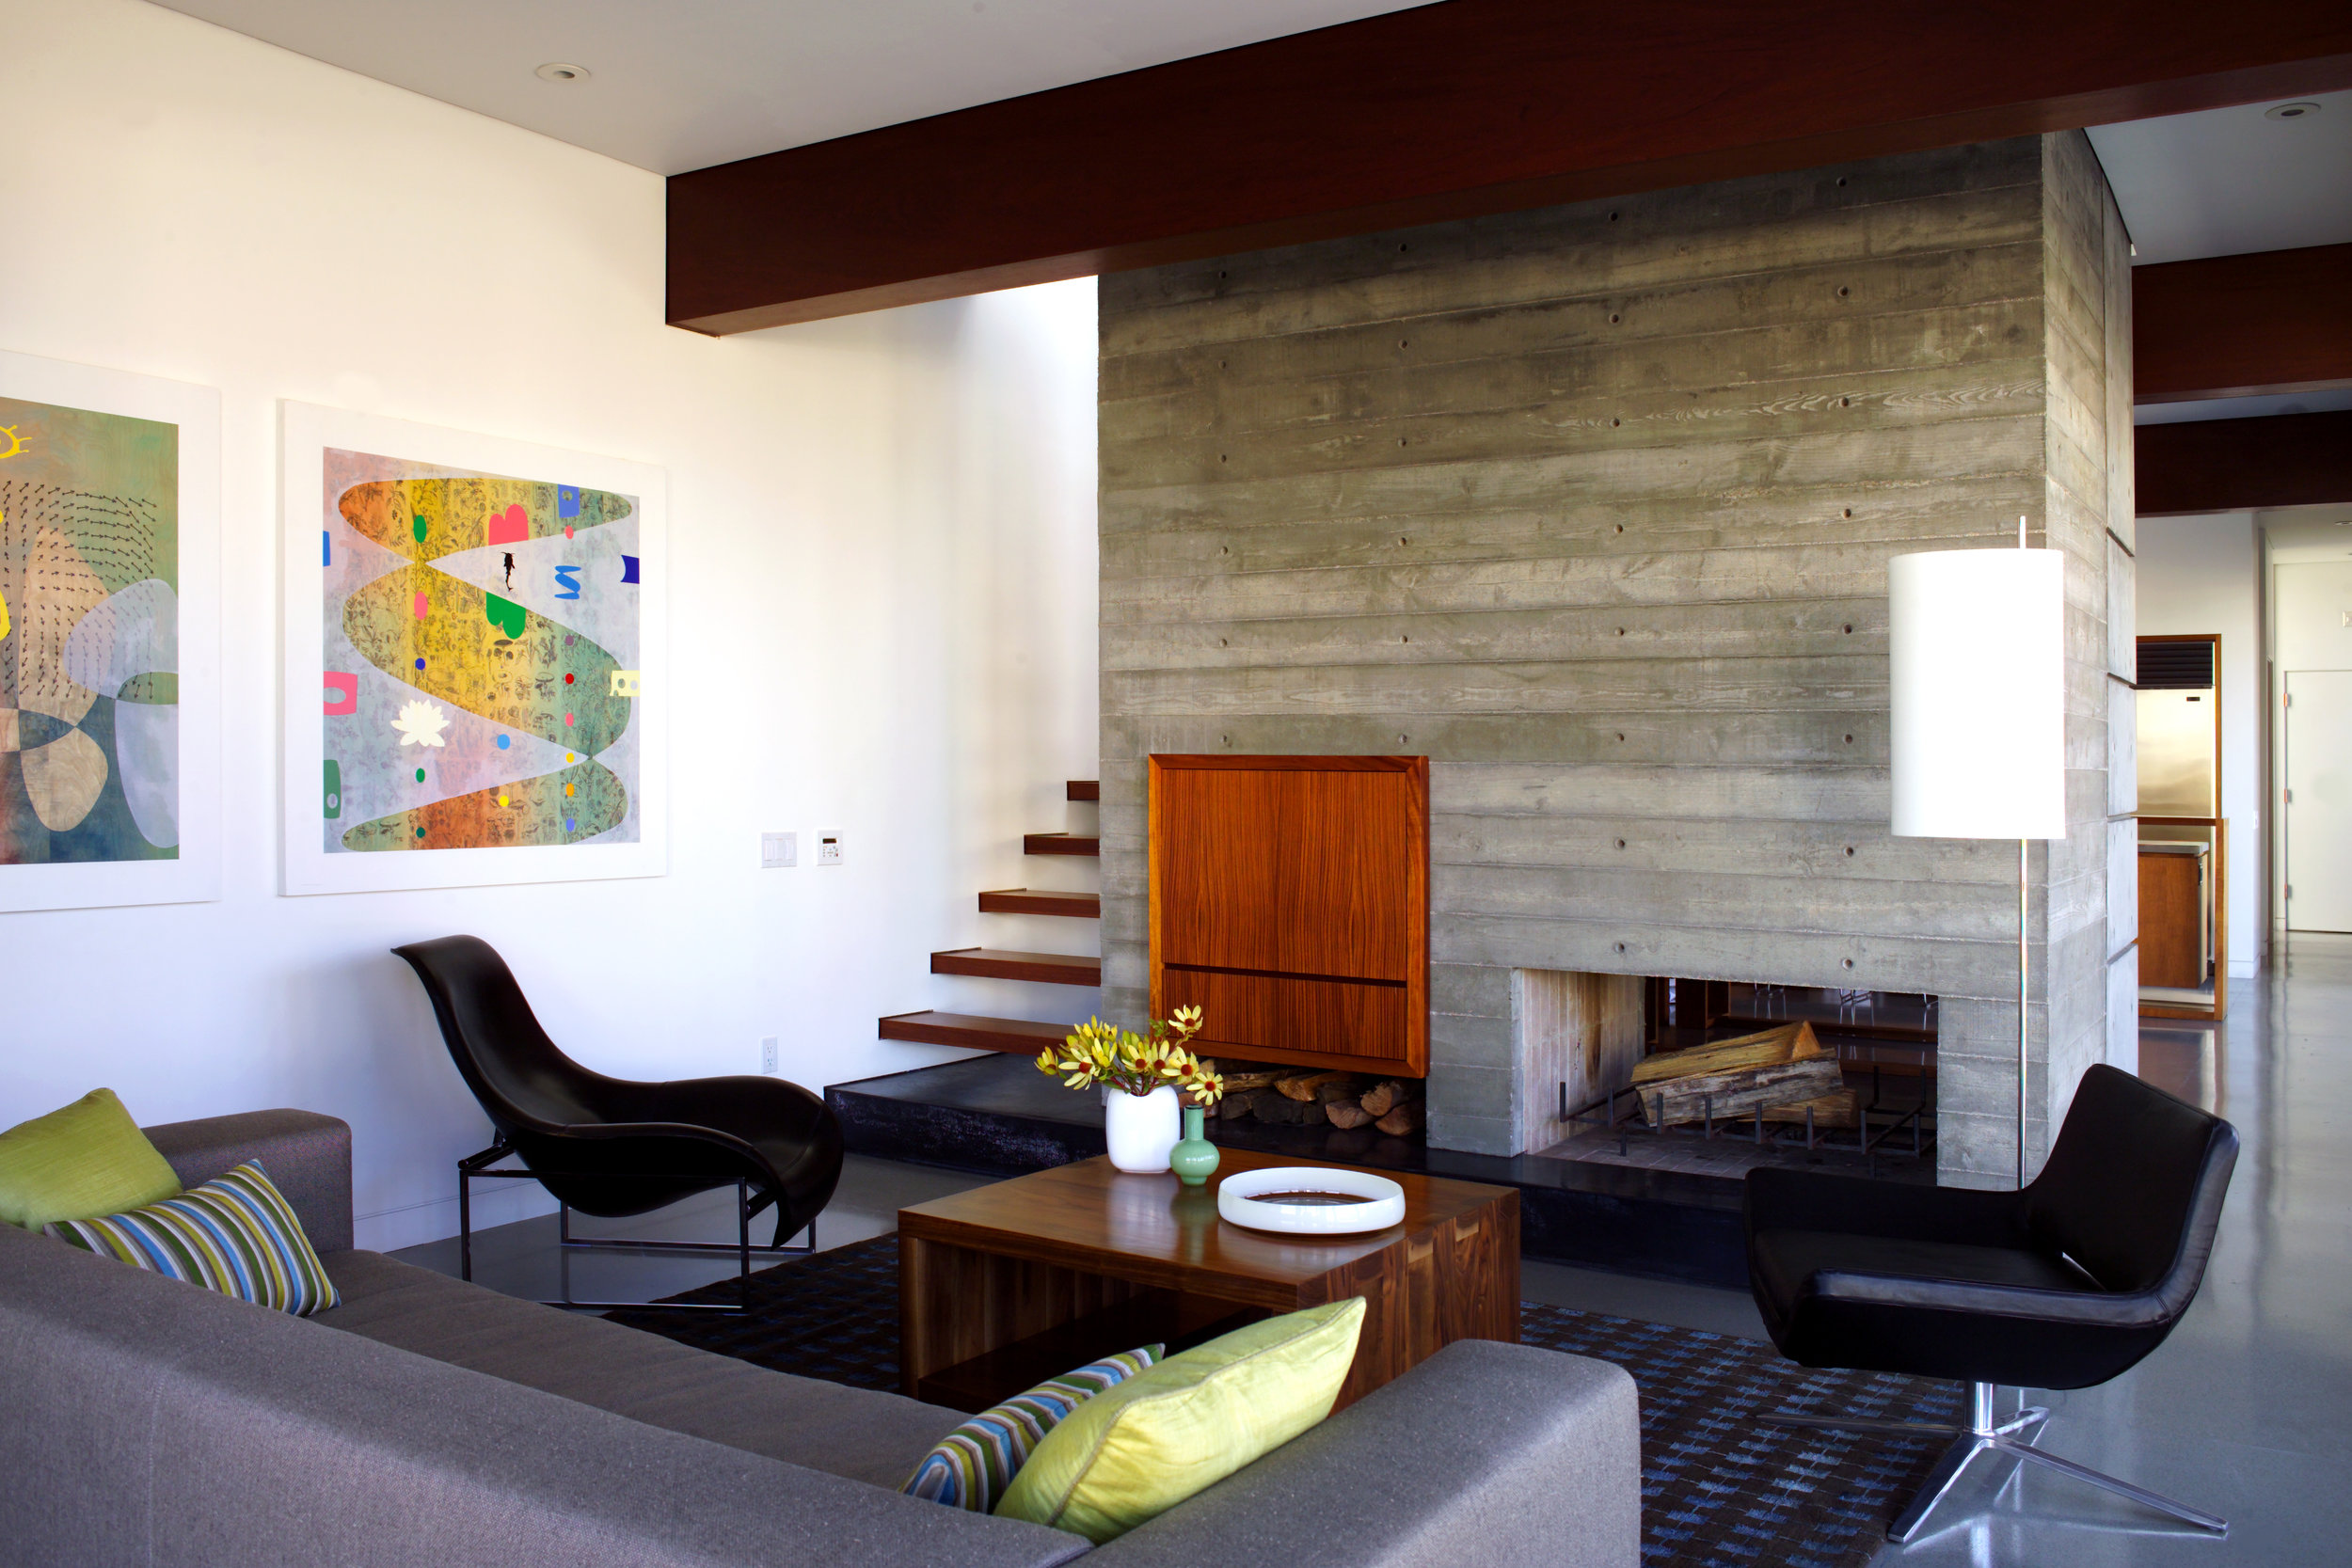 S.E.A.-Studio-Environmental-Architecture-David-Hertz-FAIA-Strand-House-Hermosa-Beach-sustainable-regenerative-restorative-design-residential-contemporary-modern-passive-systems-recycled-wood-concrete-green-building-South-Bay-ocean-view-studioea-6.jpg